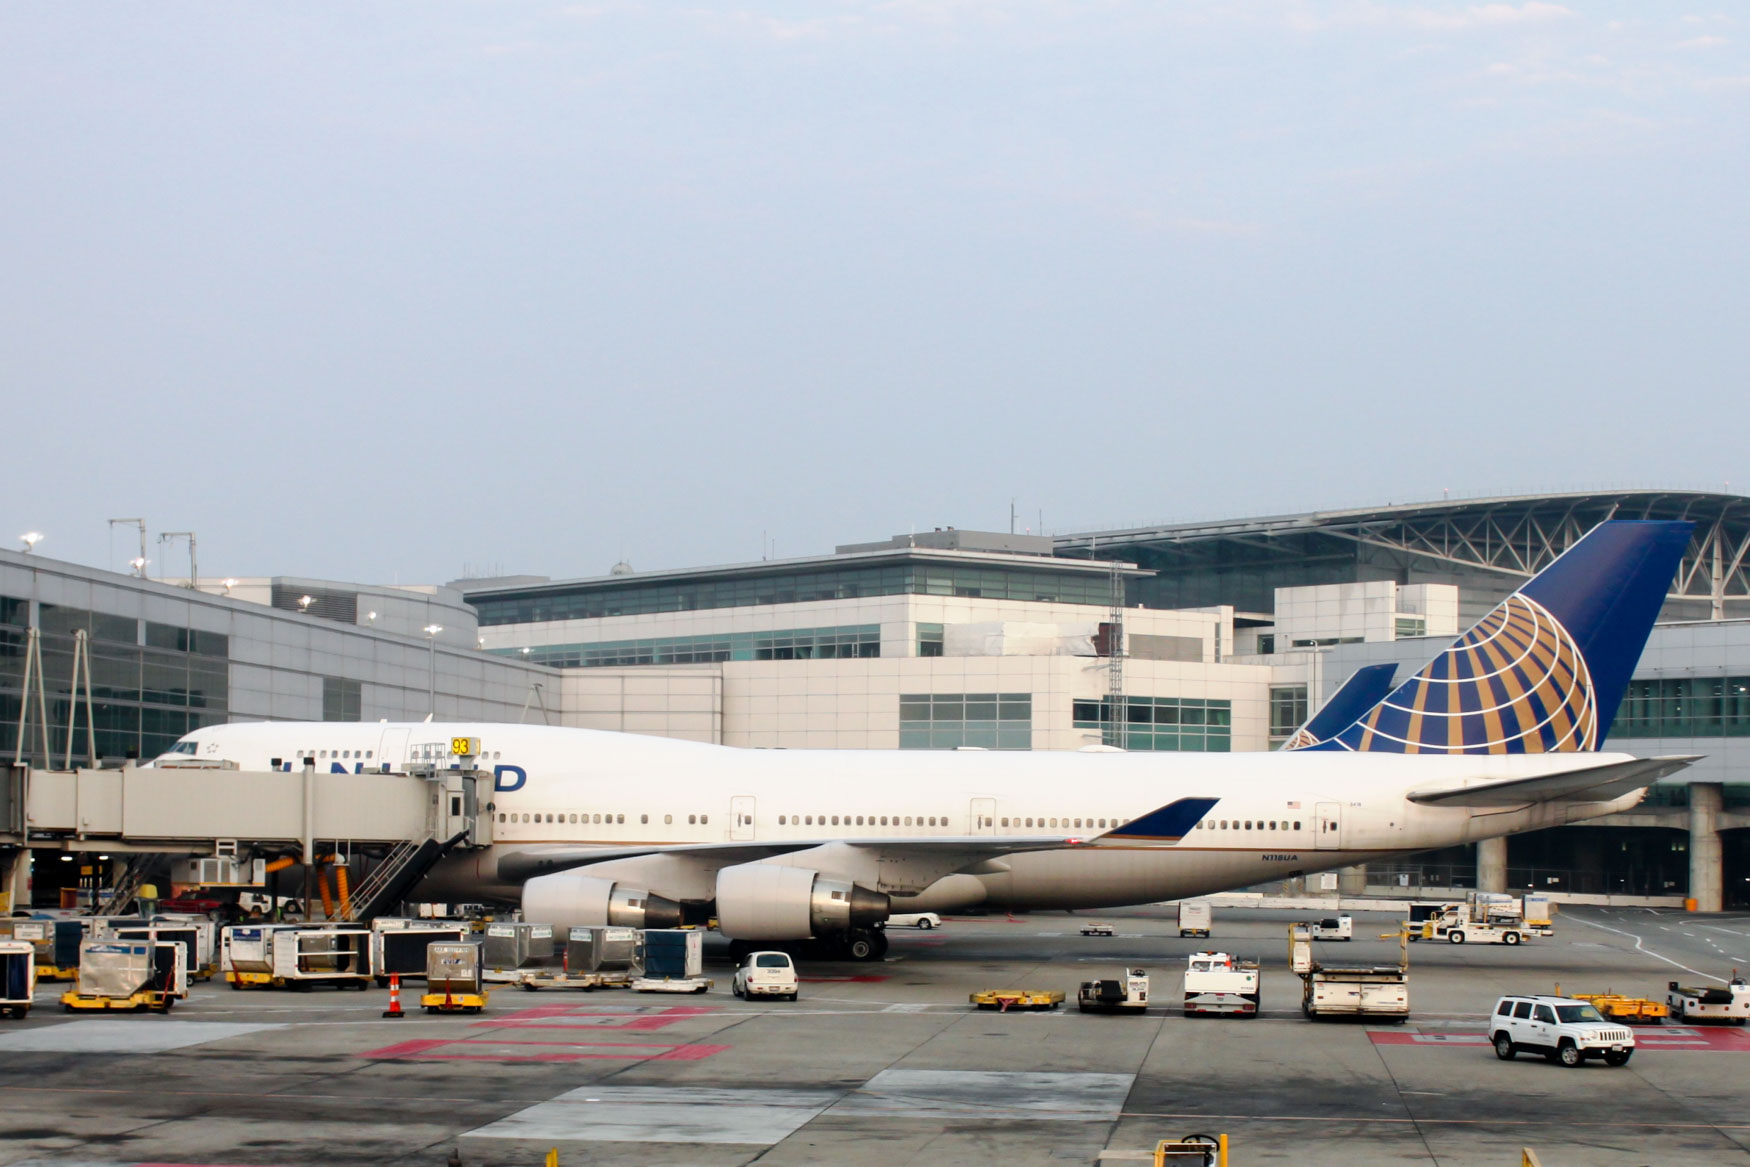 United Airlines Boeing 747-400 at San Francisco Airport